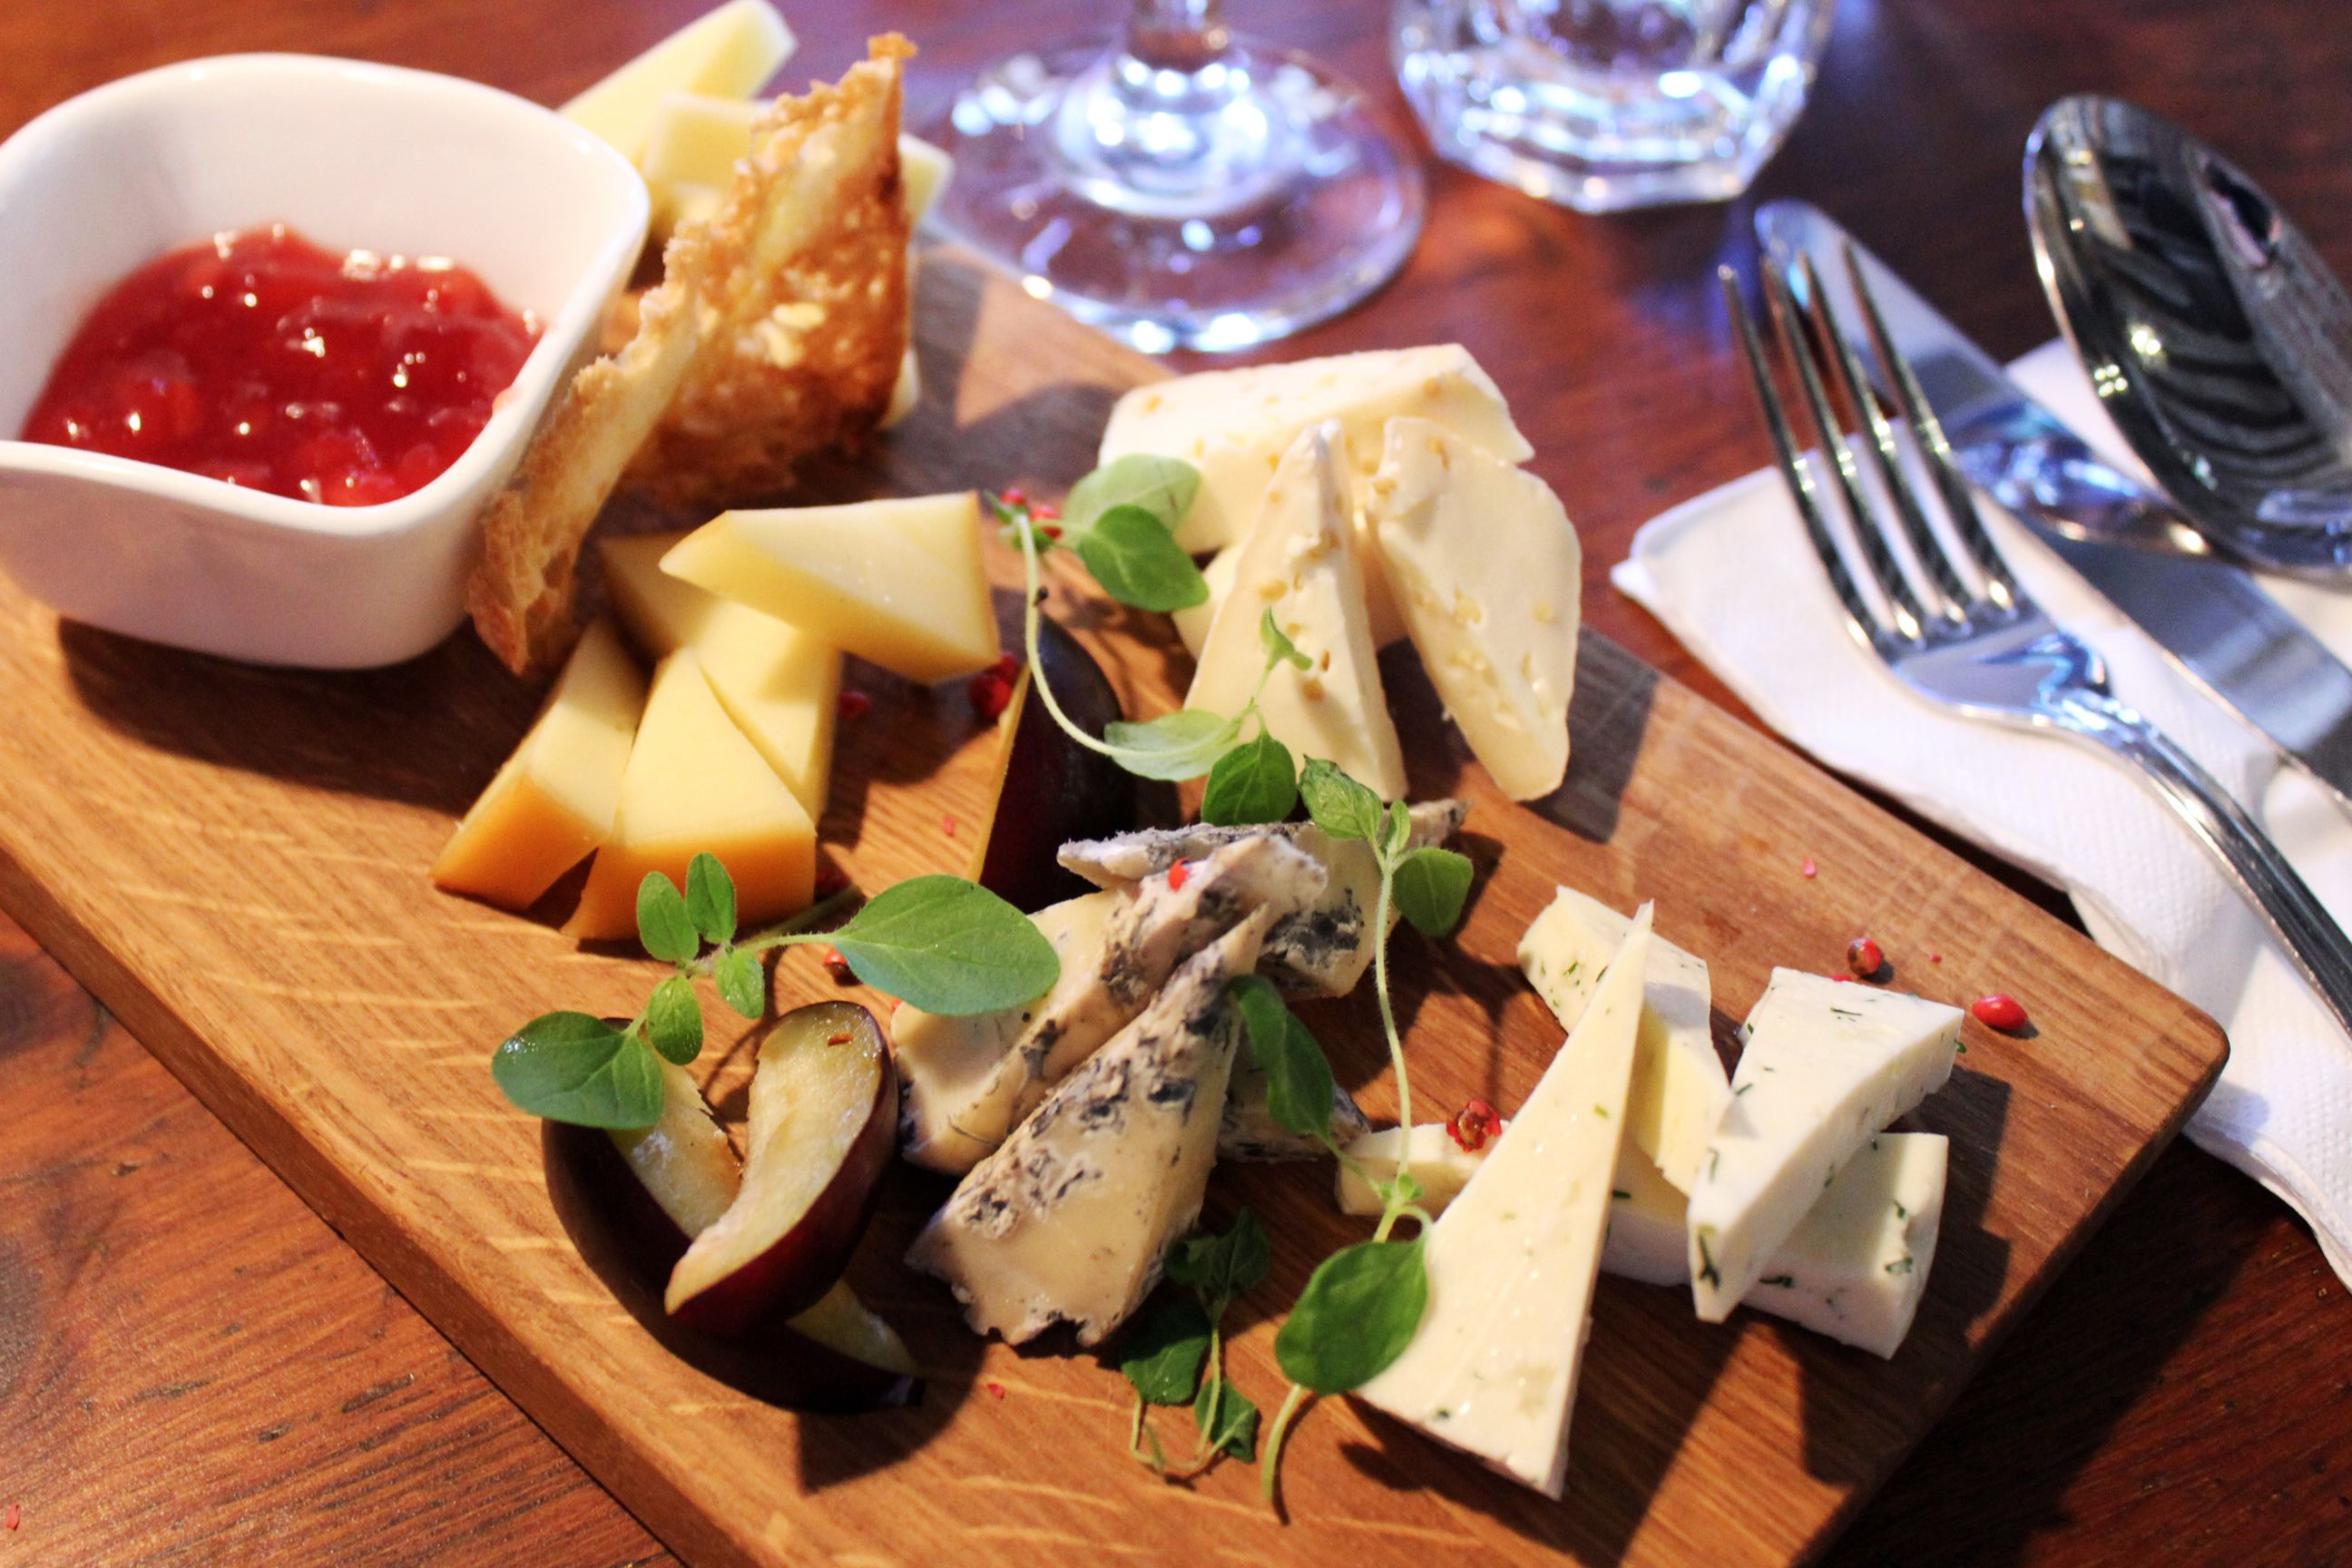 Delicious selection of cheeses